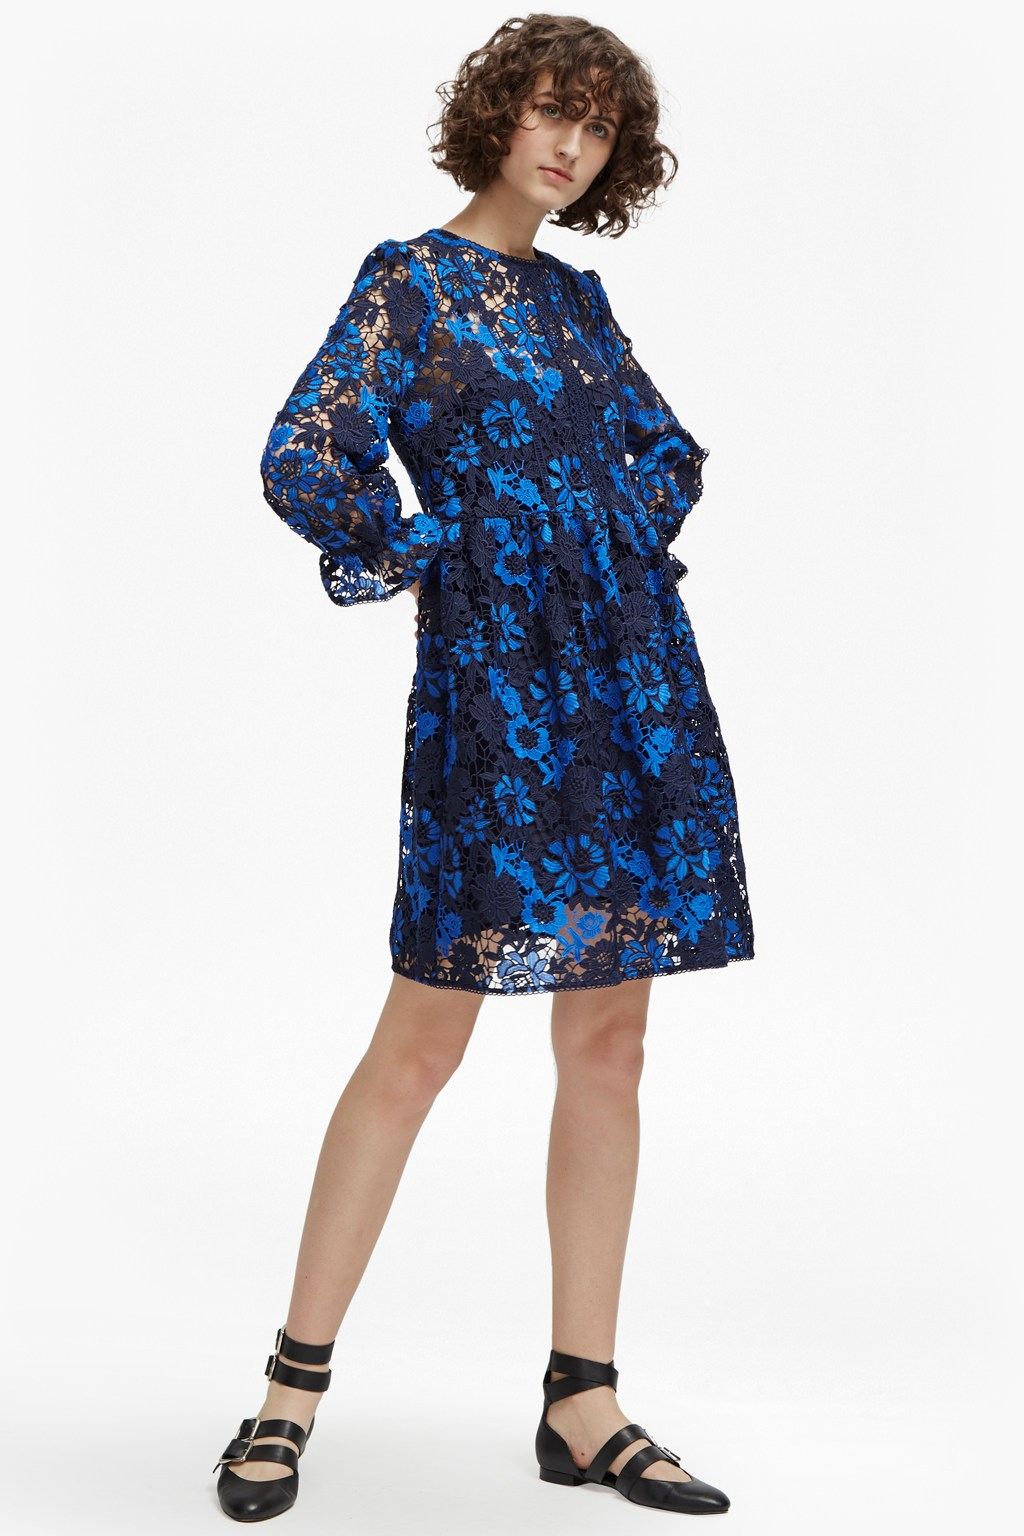 c78784ef9c9a Source https   www.frenchconnection.com product woman-collections 71jbi musea- lace-flared-dress.htm